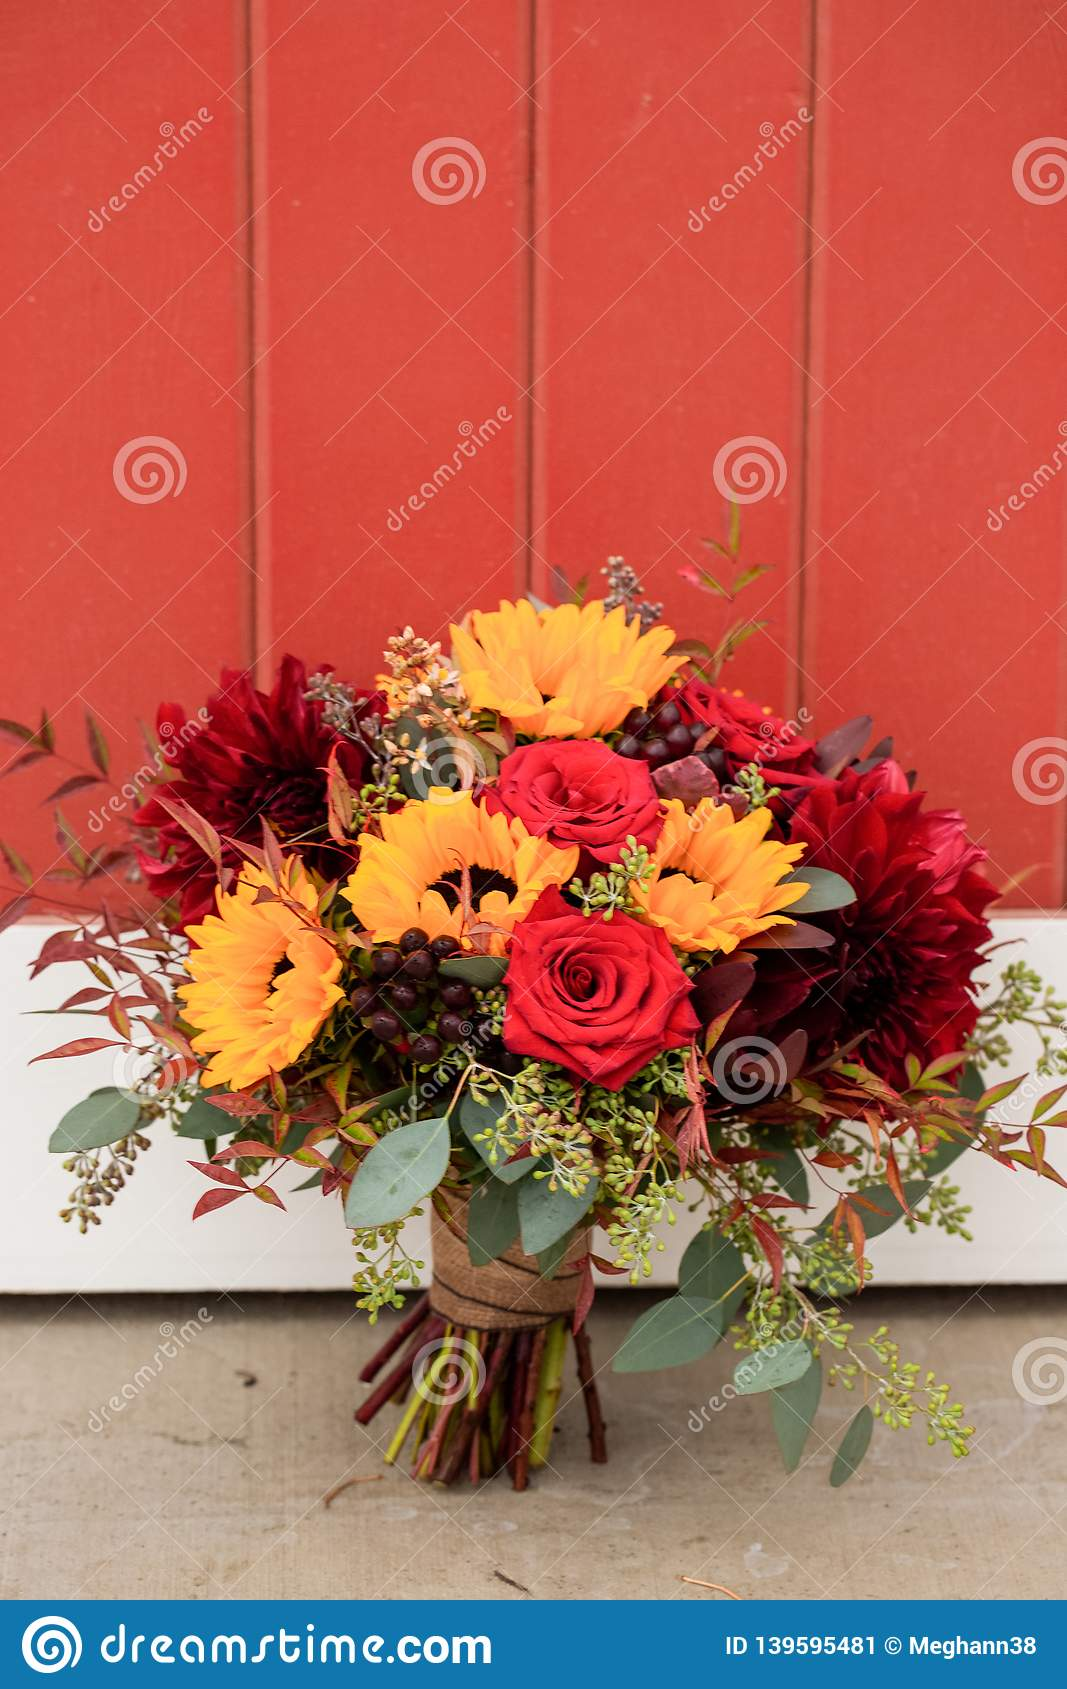 Red Rose And Sunflower Wedding Bouquet Stock Image Image Of Flower